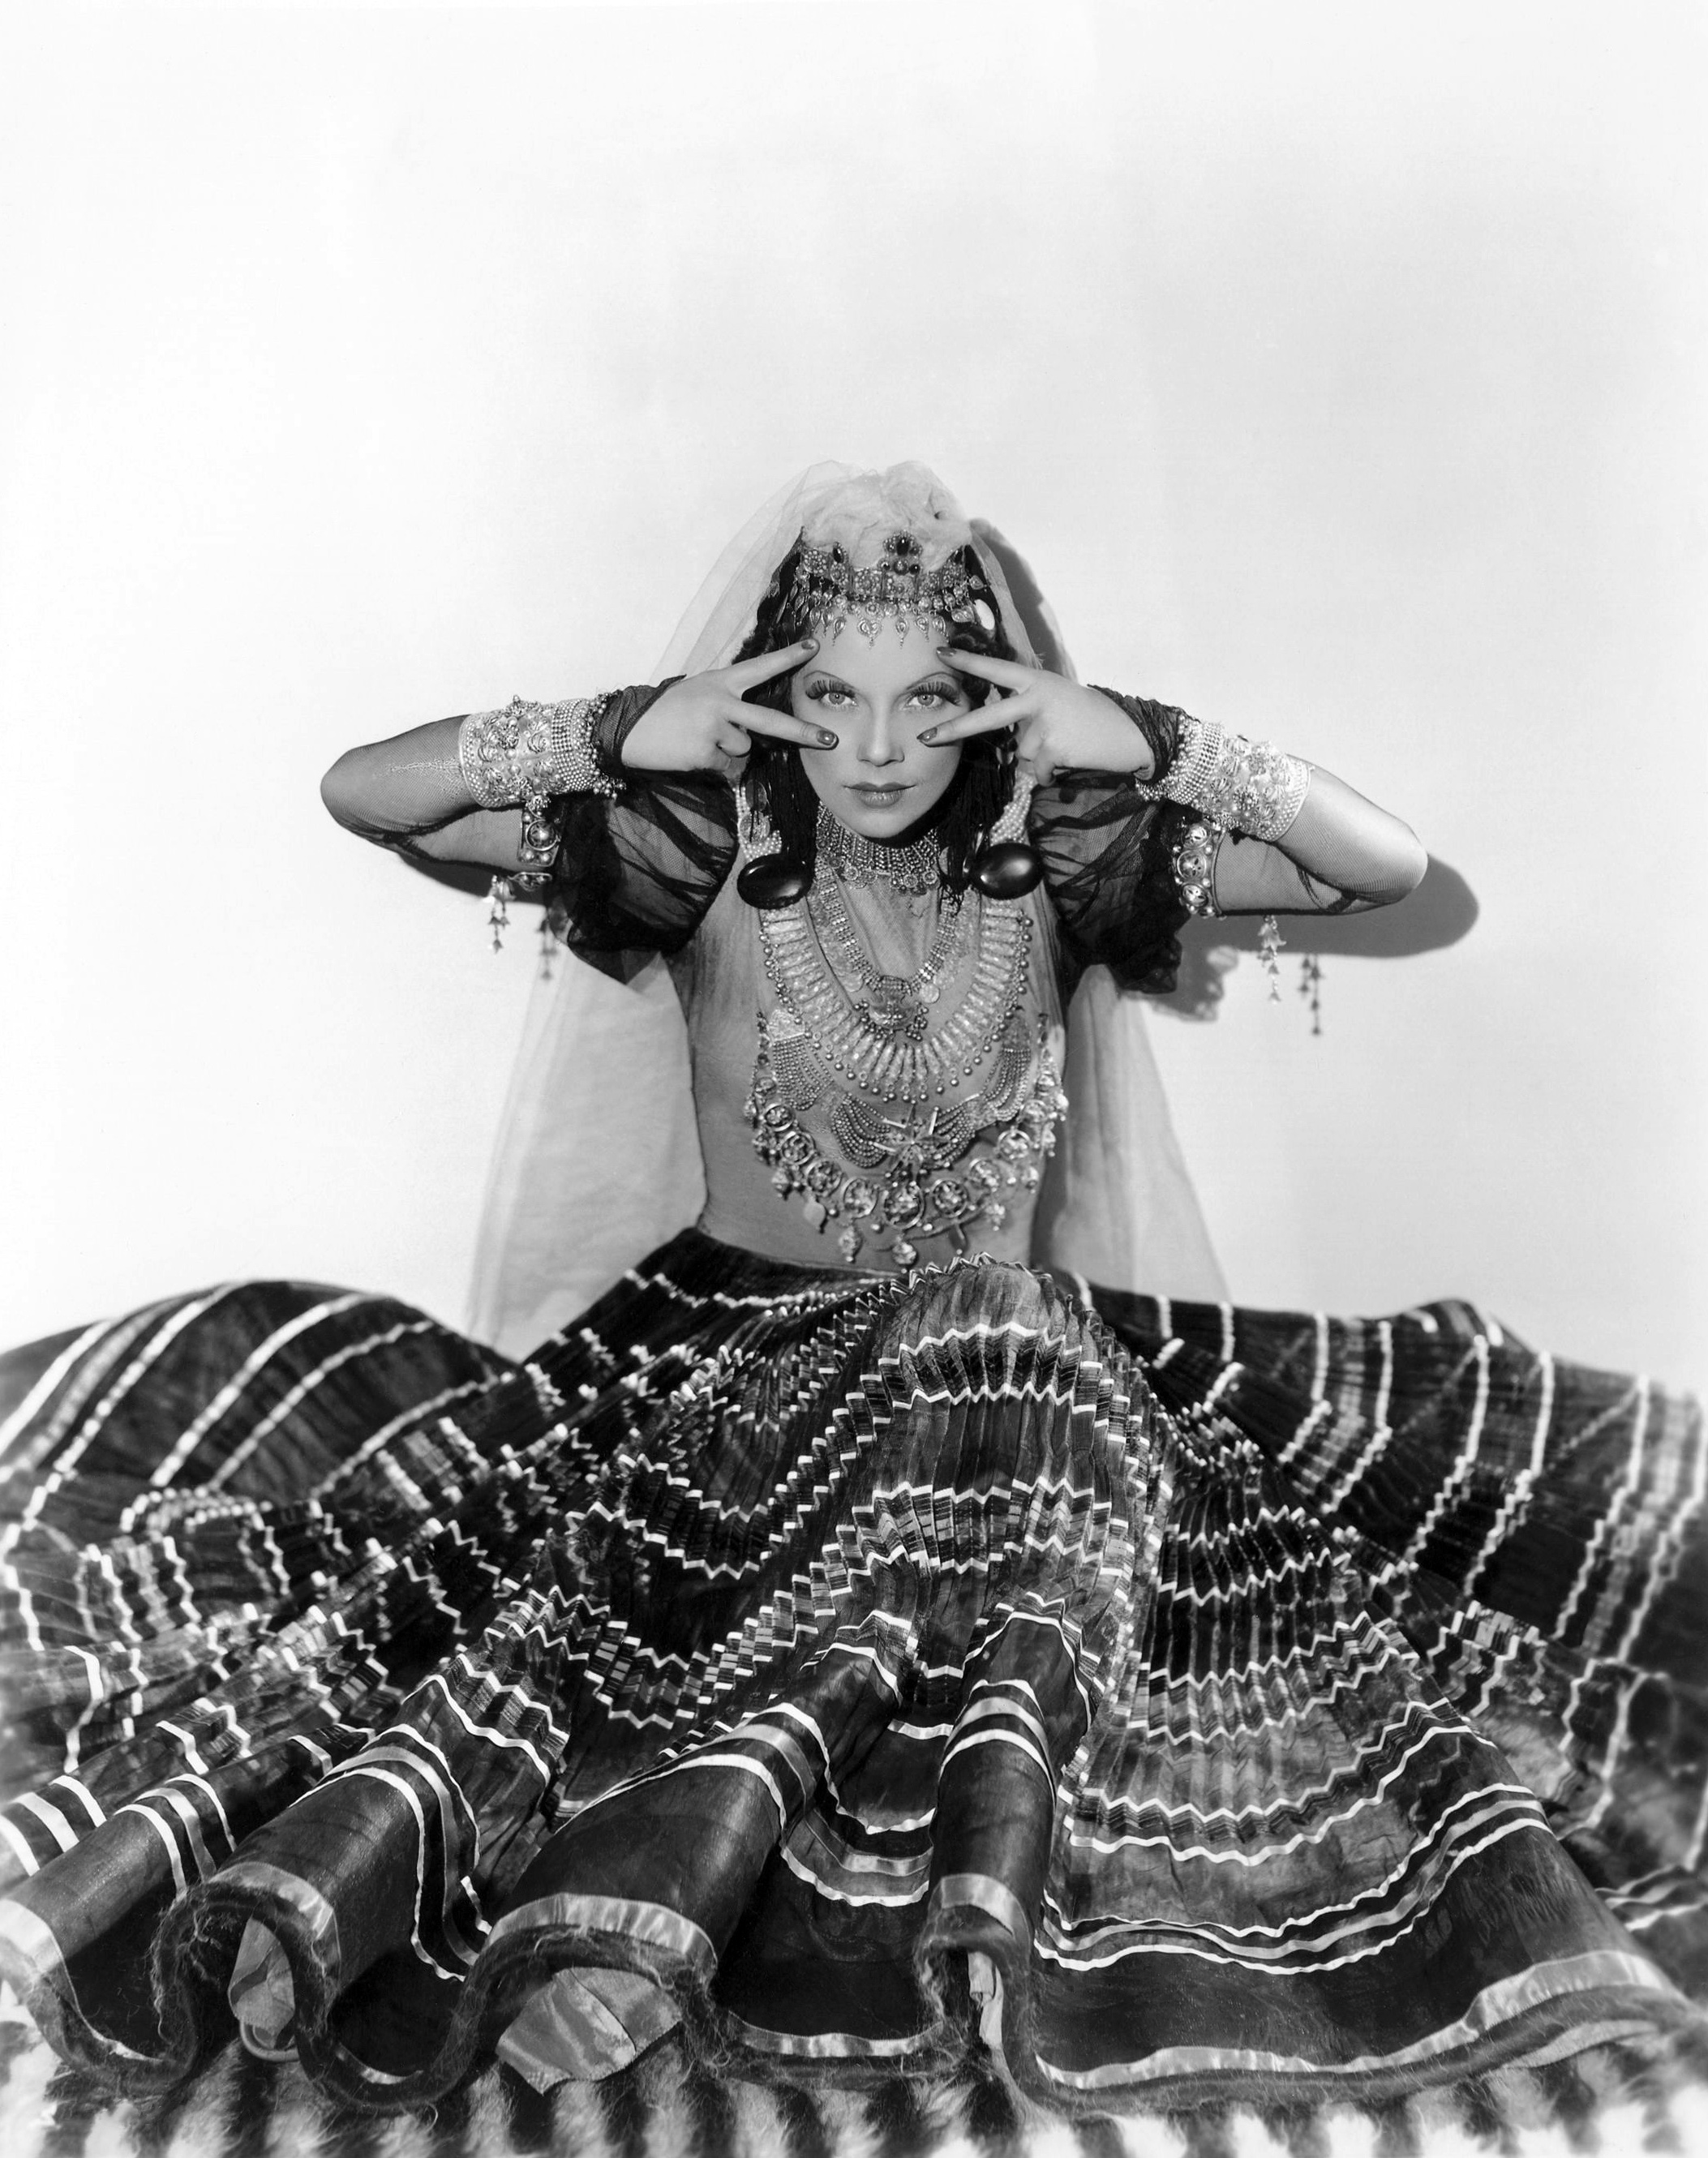 Discussion on this topic: Keala Kennelly, tilly-losch/